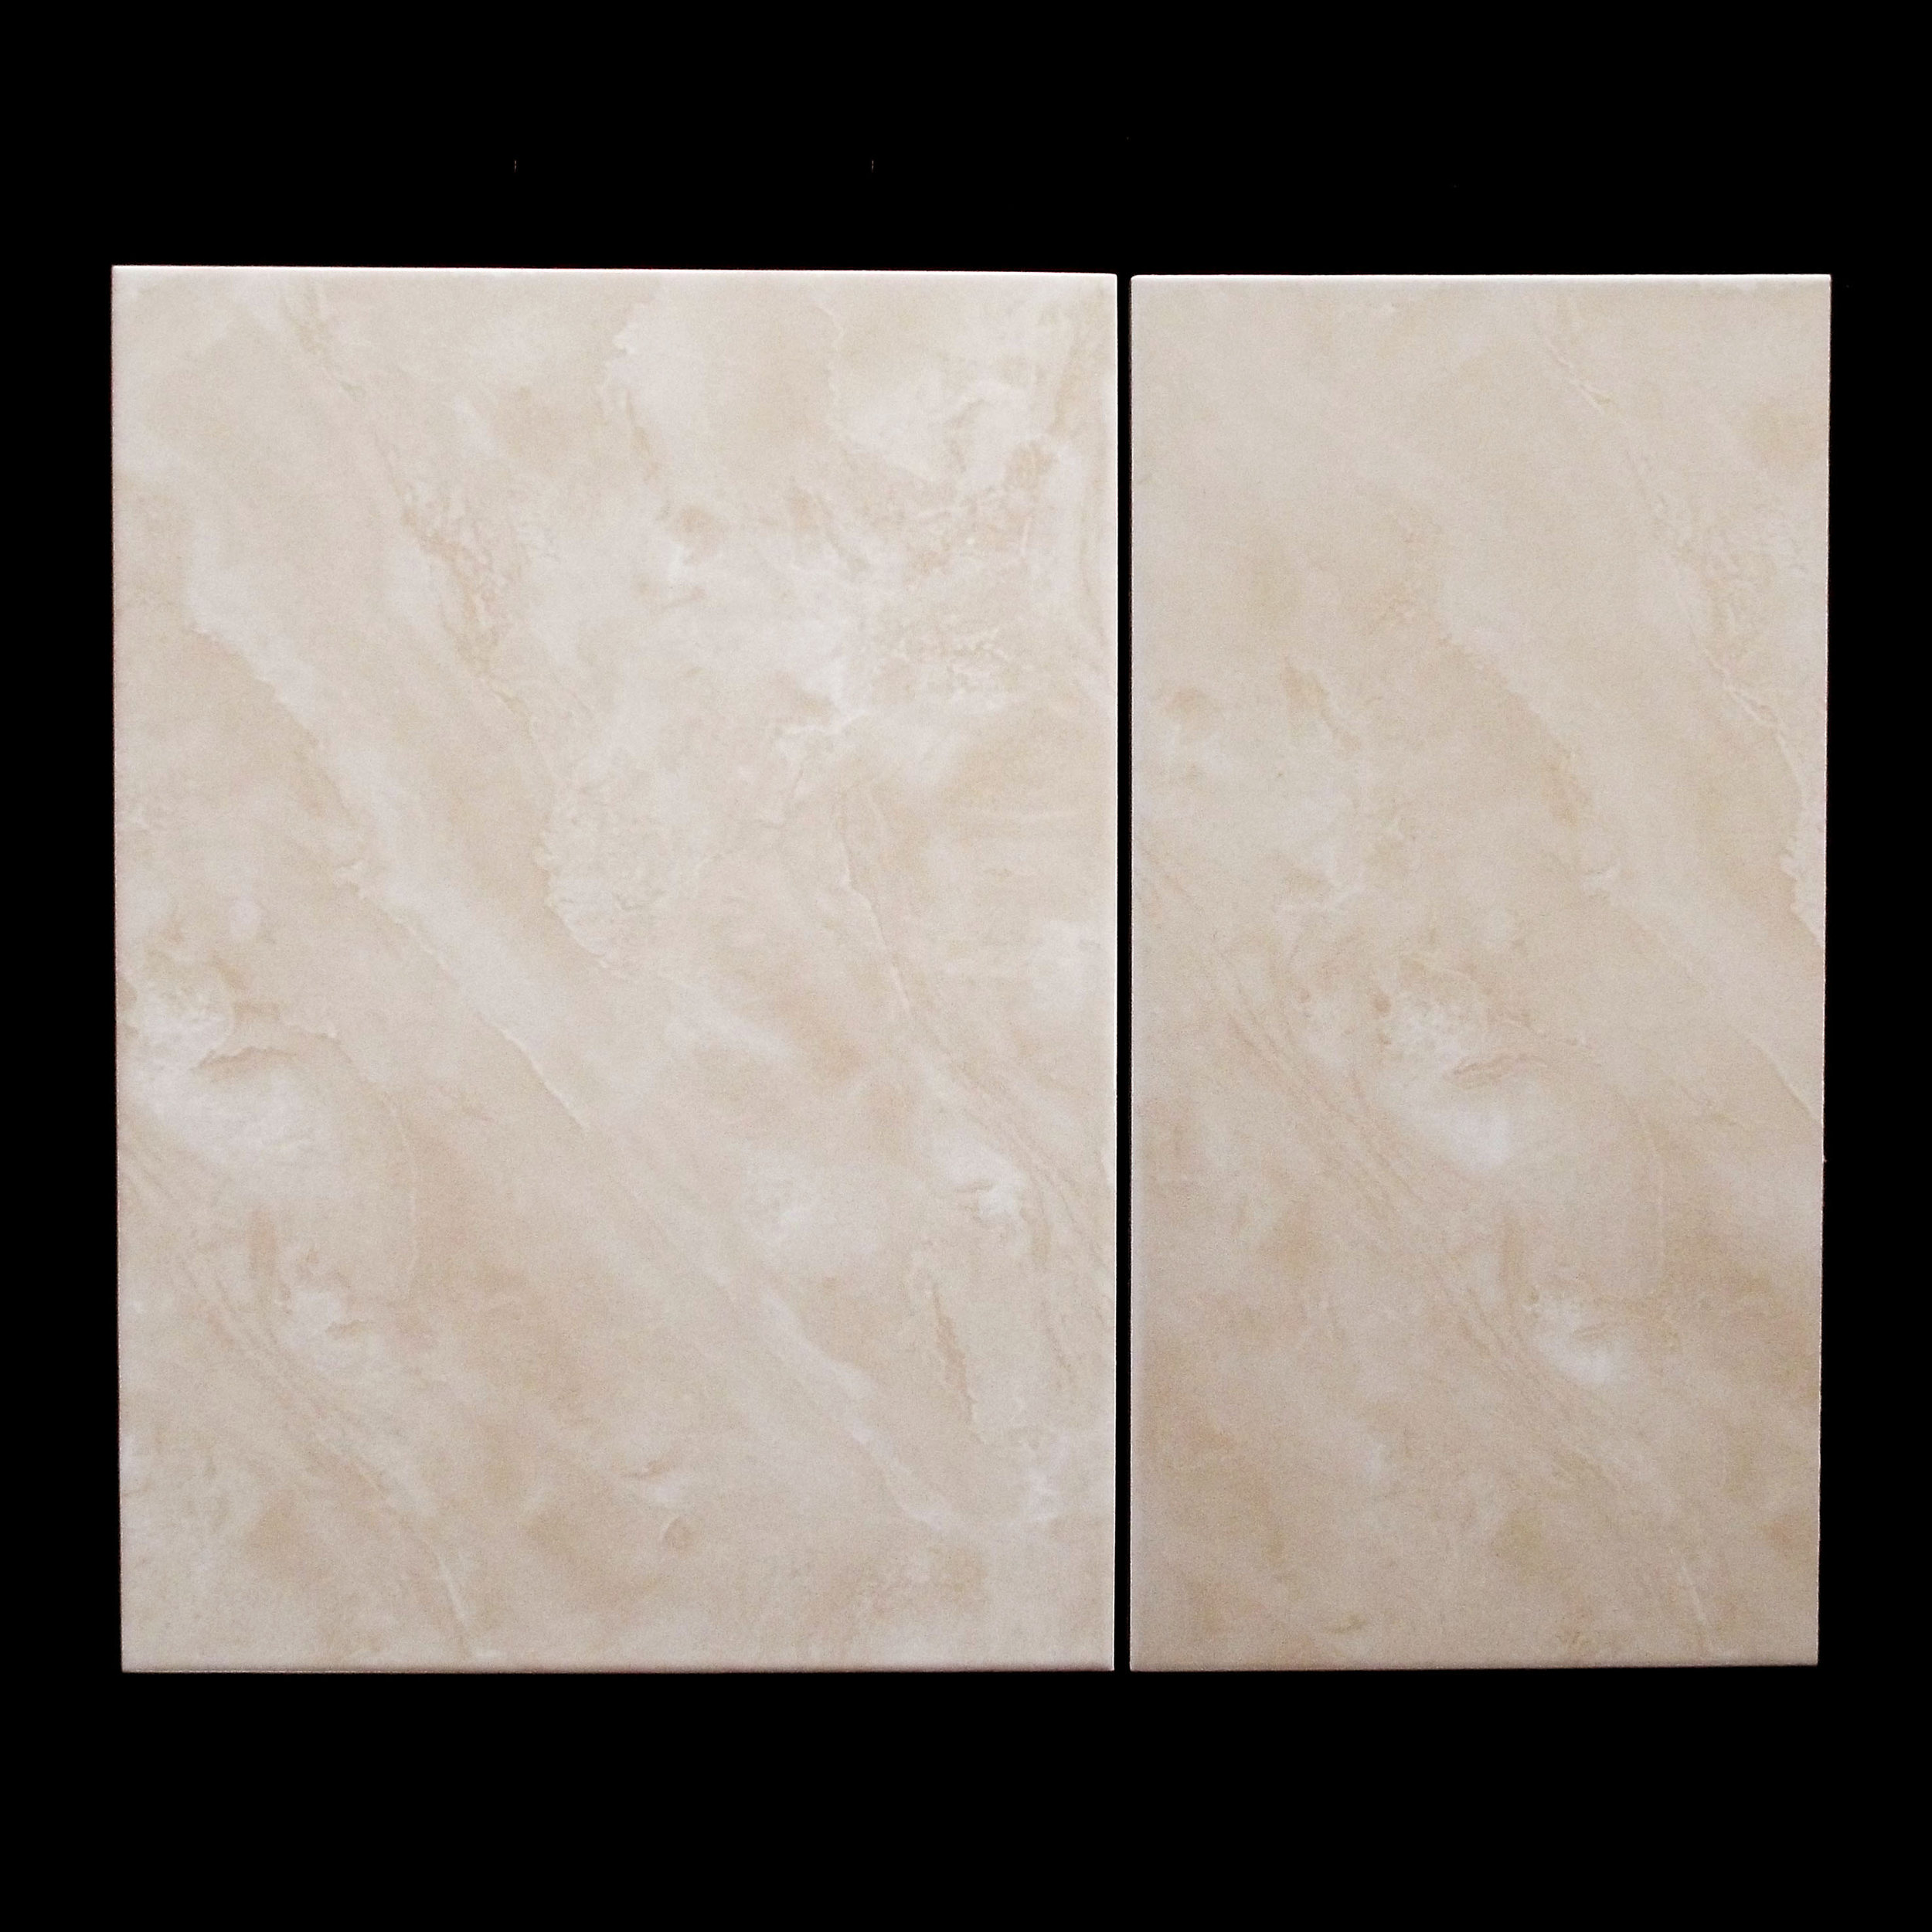 "VITORIA BEIGE  12""X18"" GLOSSY WALL - 14 PC/CTN (21.53 SF); 72CTN/PLT  18""X18"" (1/2 PC SHOWN) GLOSSY FLOOR - 10 PC/CTN (26.91 SF); 64 CTN/PLT   NO BULLNOSE AVAILABLE"